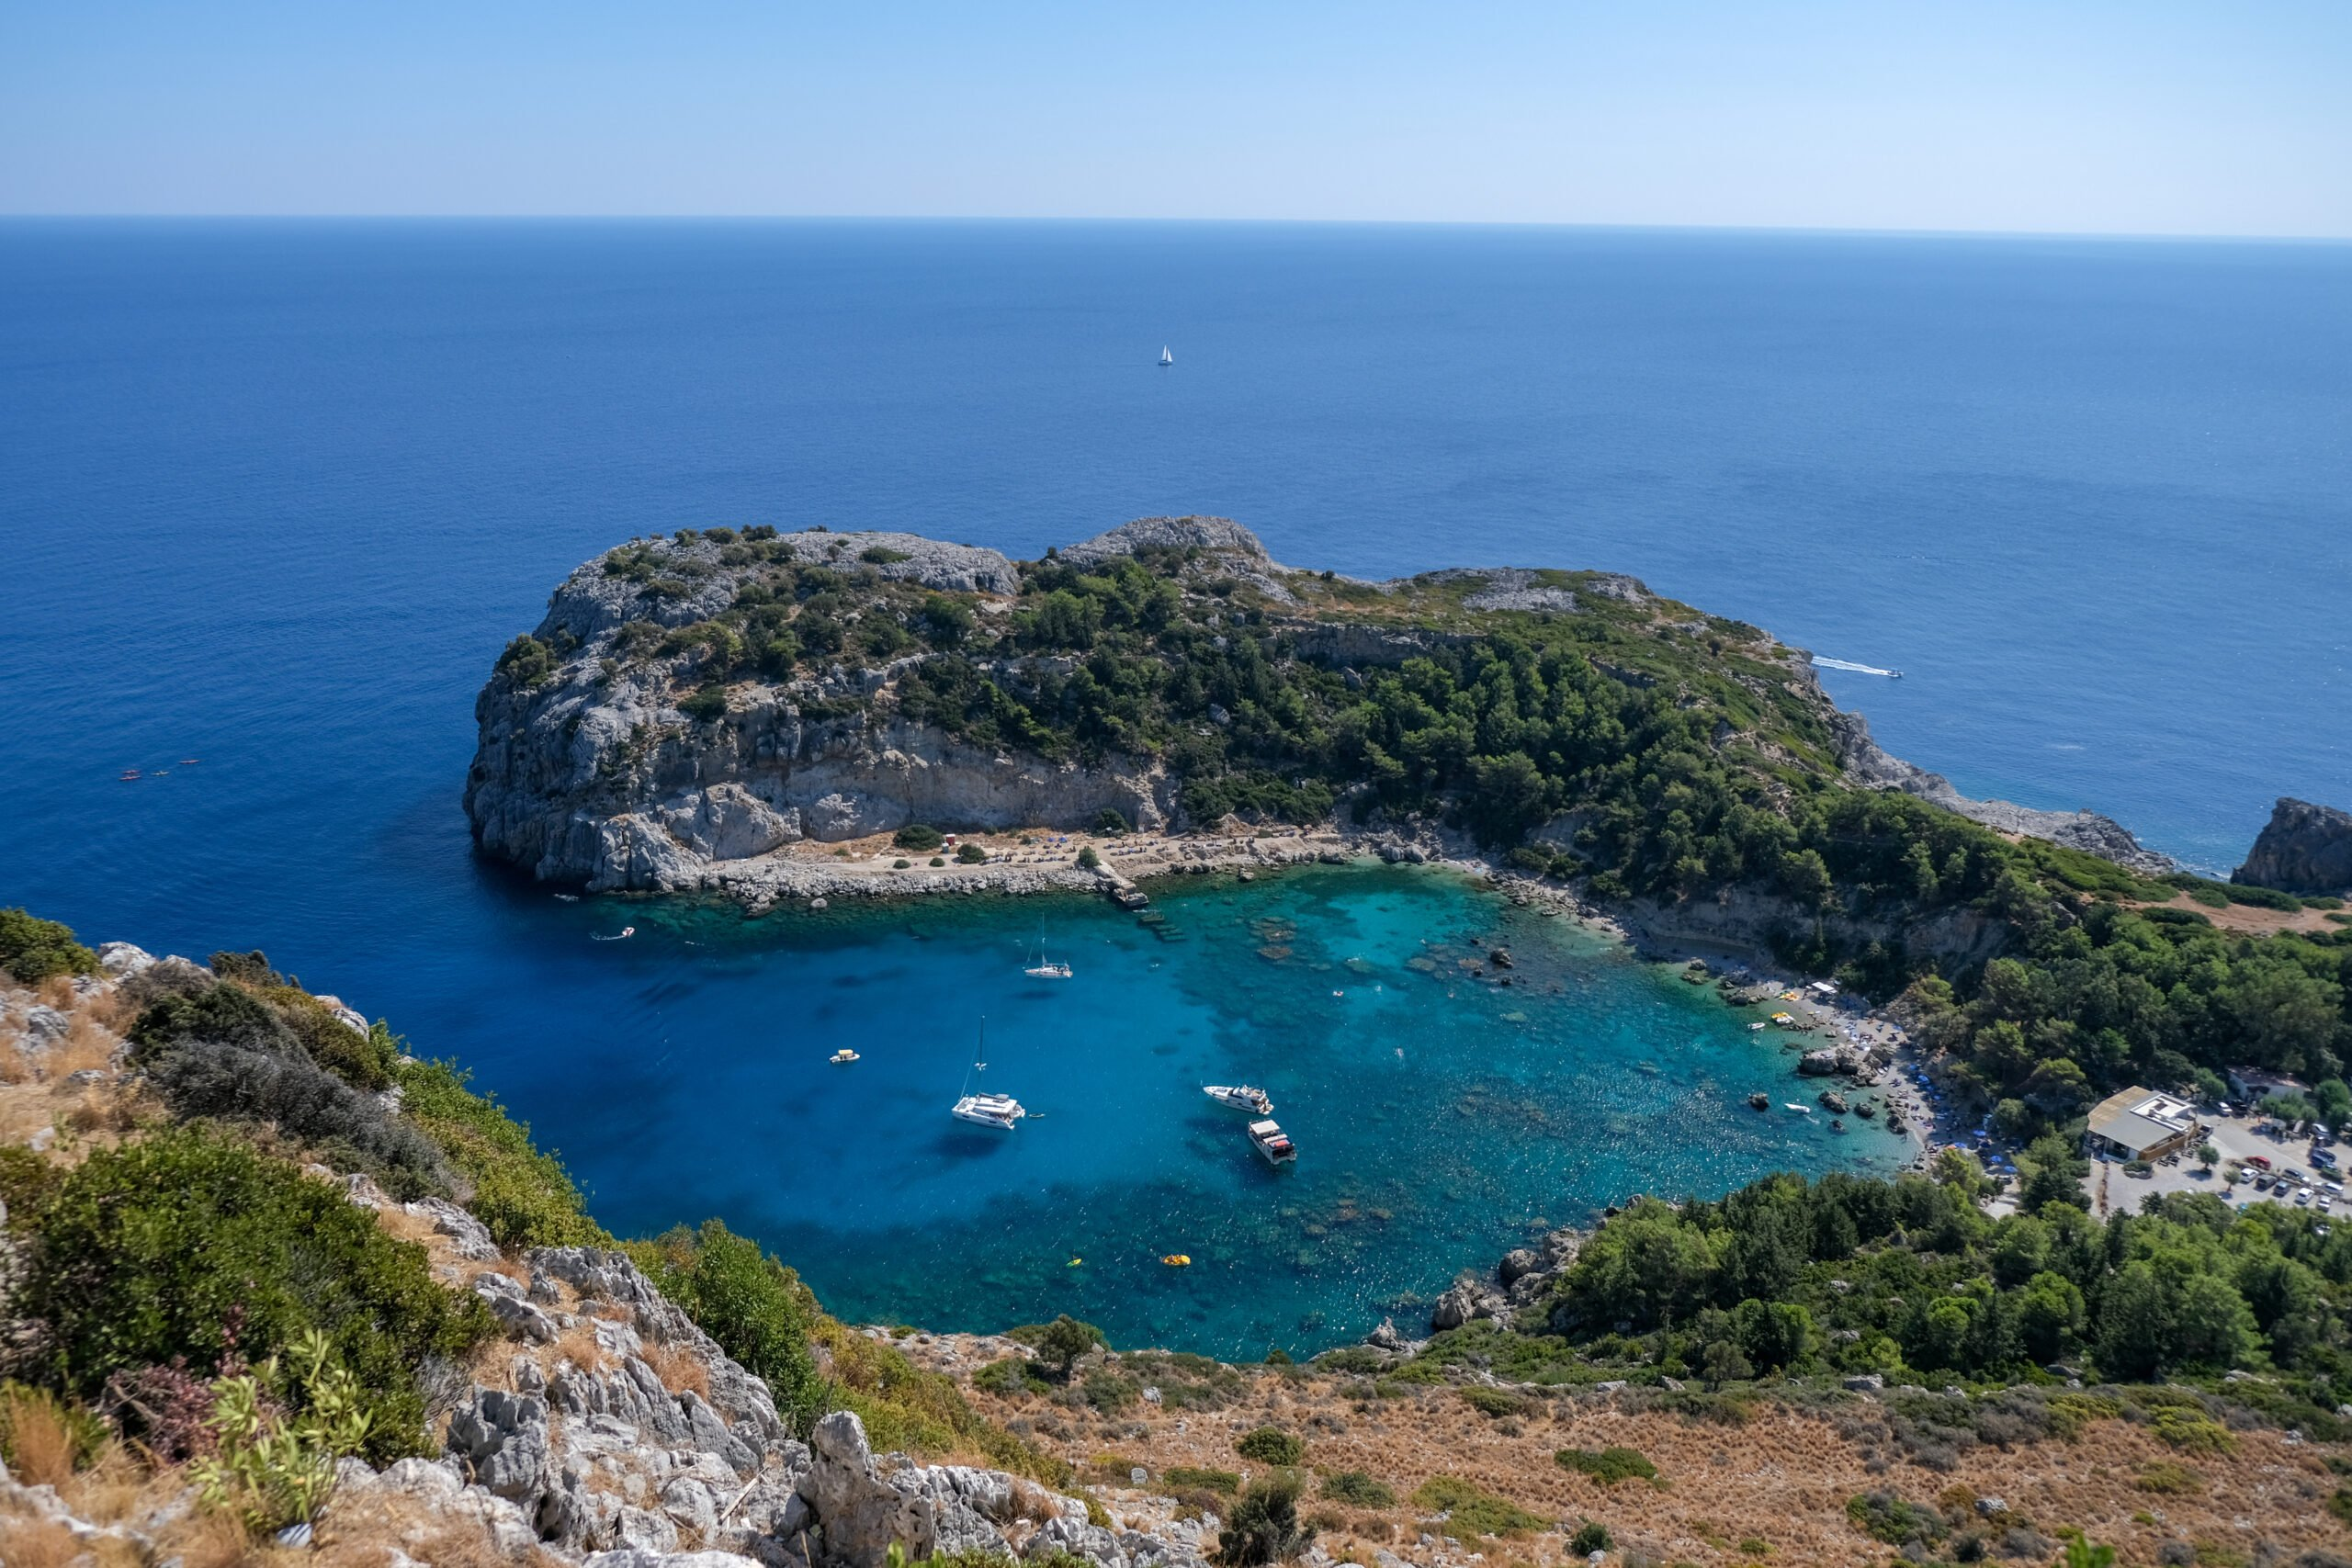 Explre Rhodes In Our 3 Day Getaway Rhodes Tour